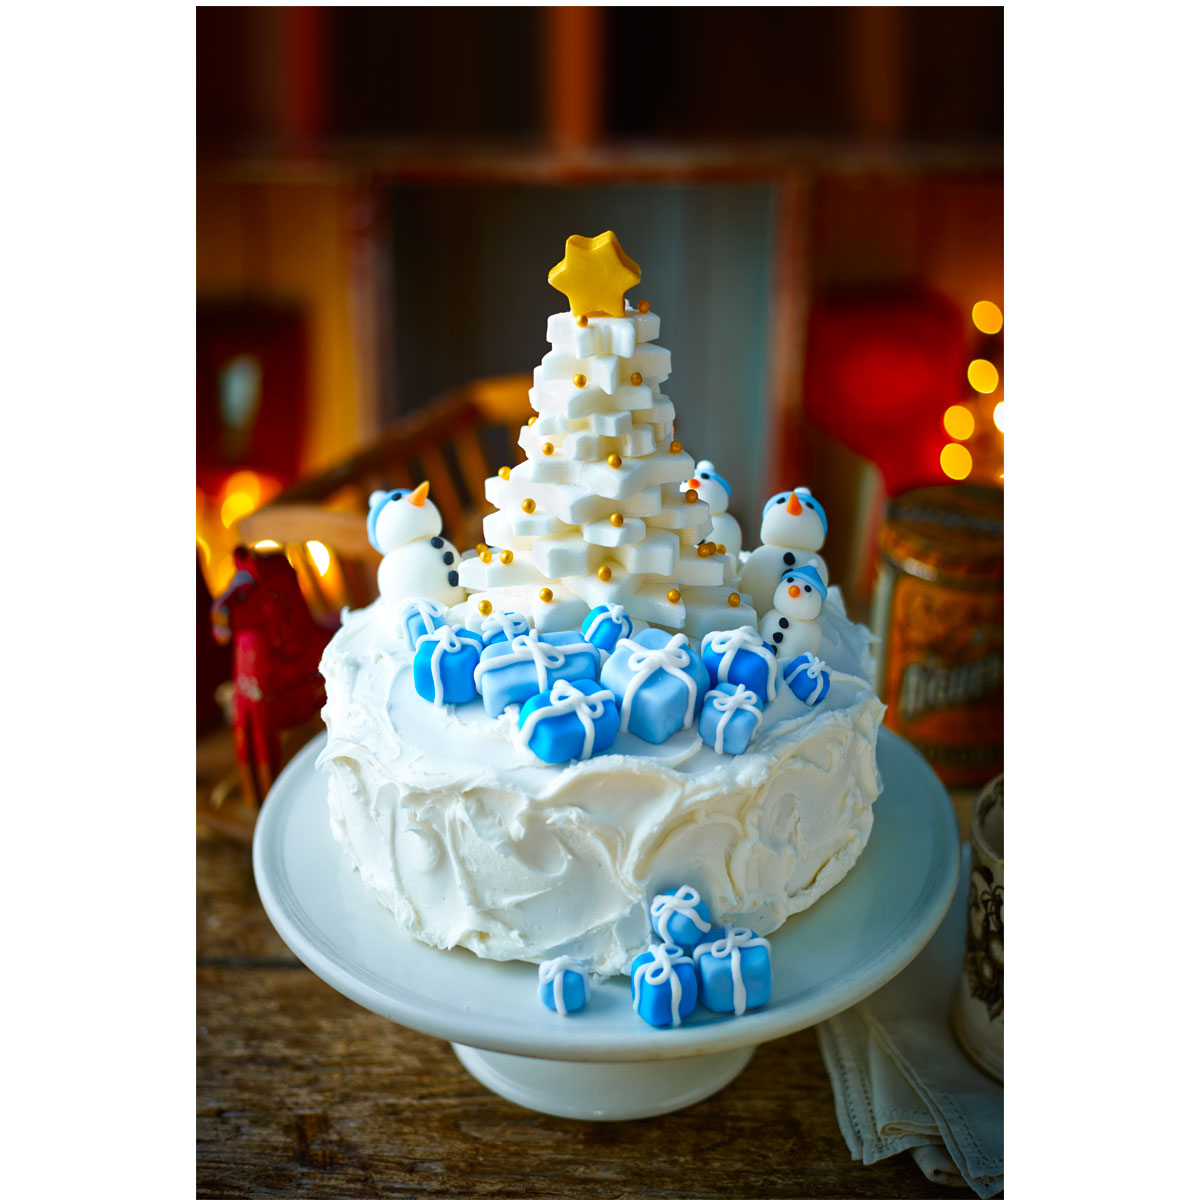 Is Cake Decorating A Good Career